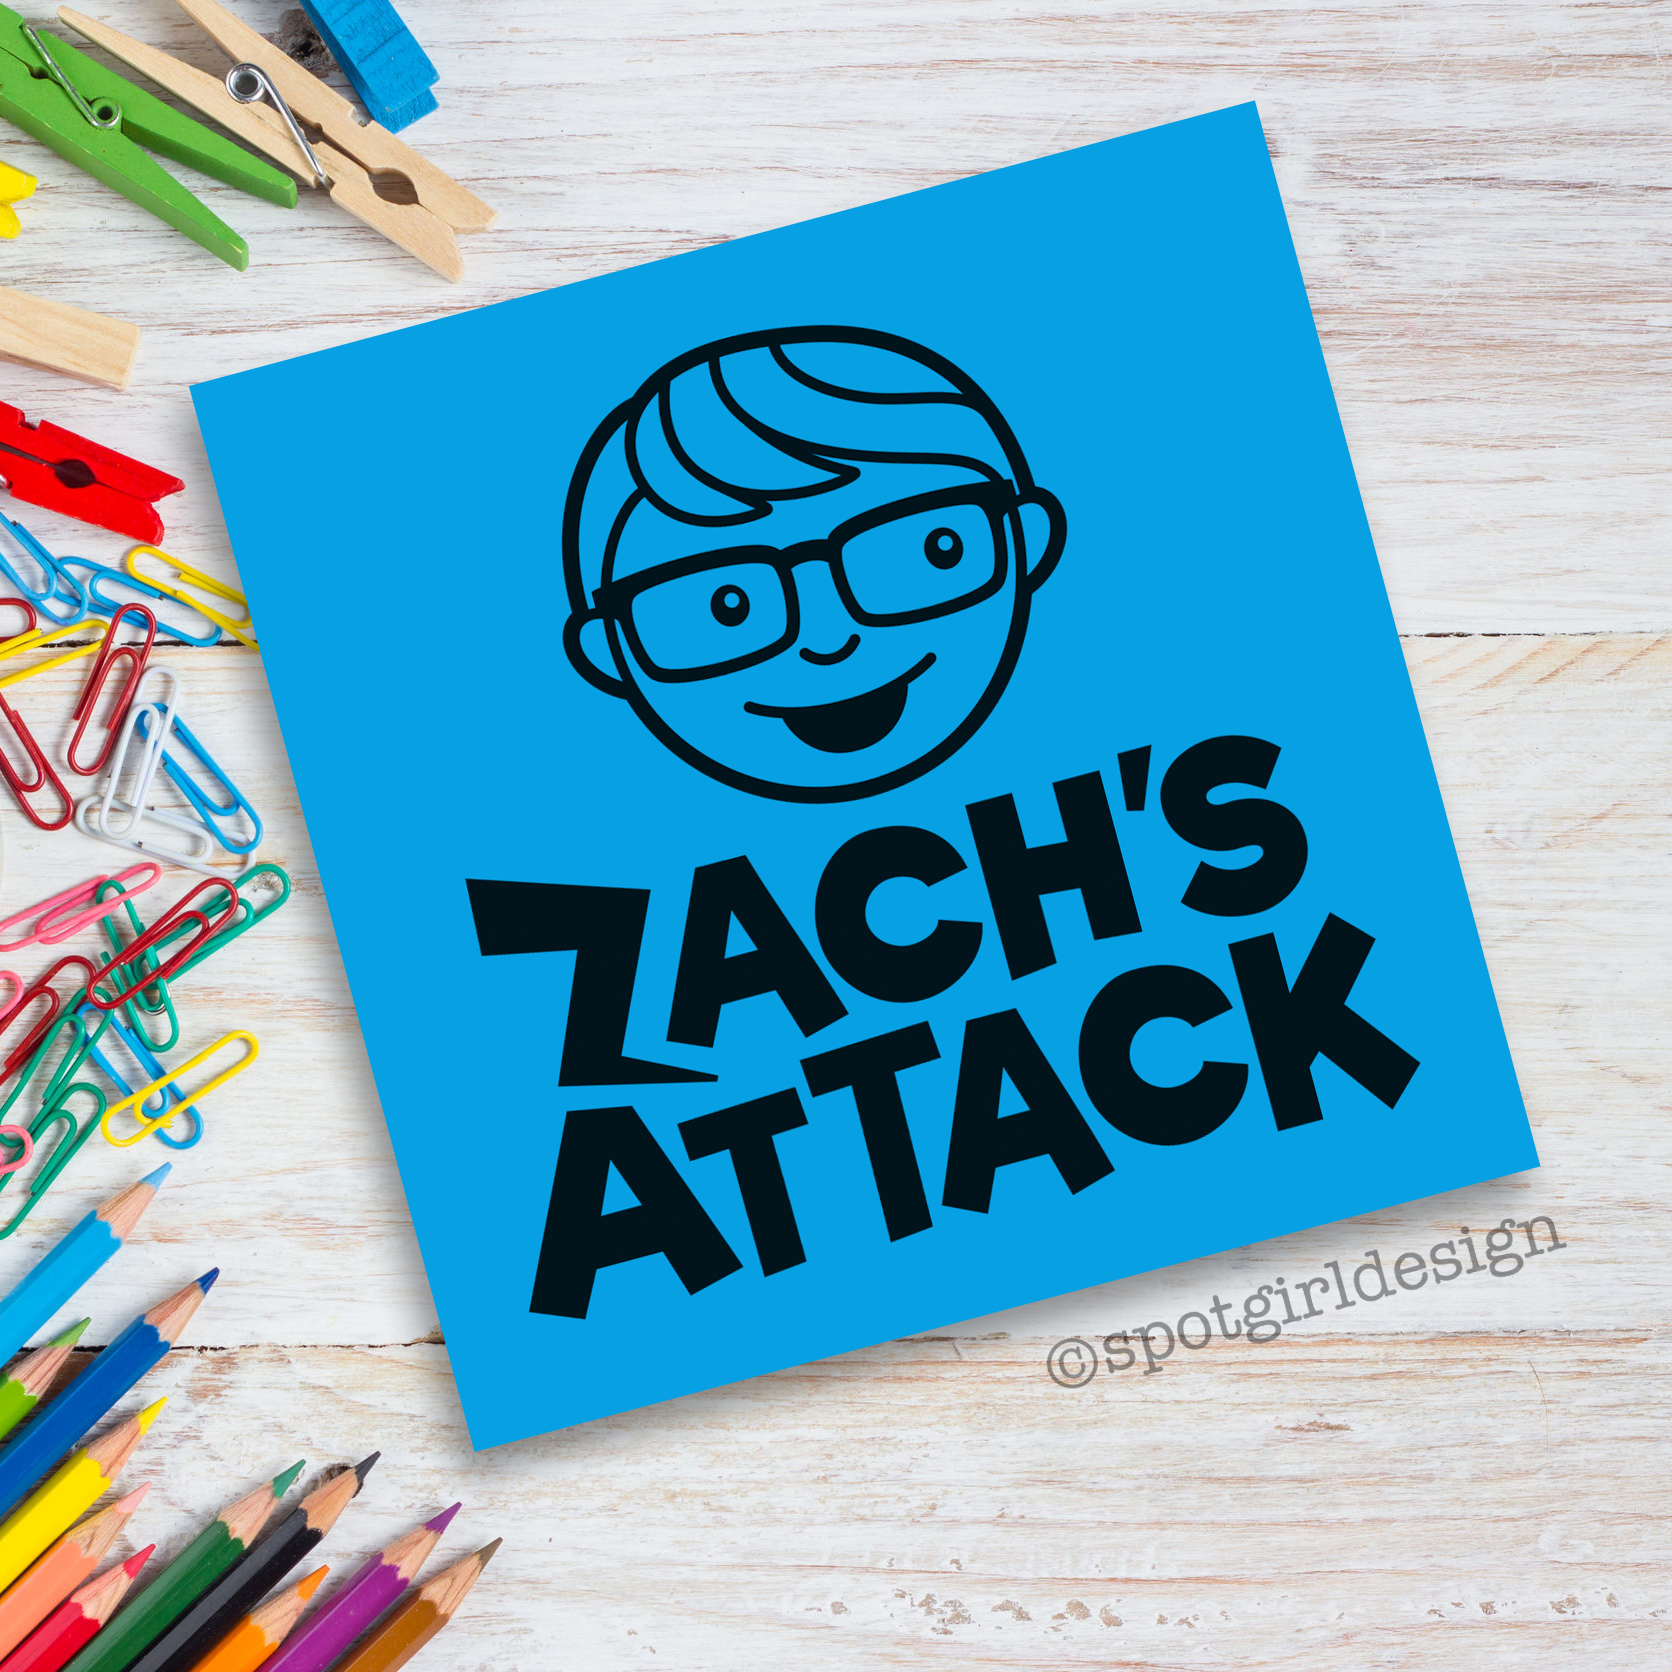 Zach's Attack Logo